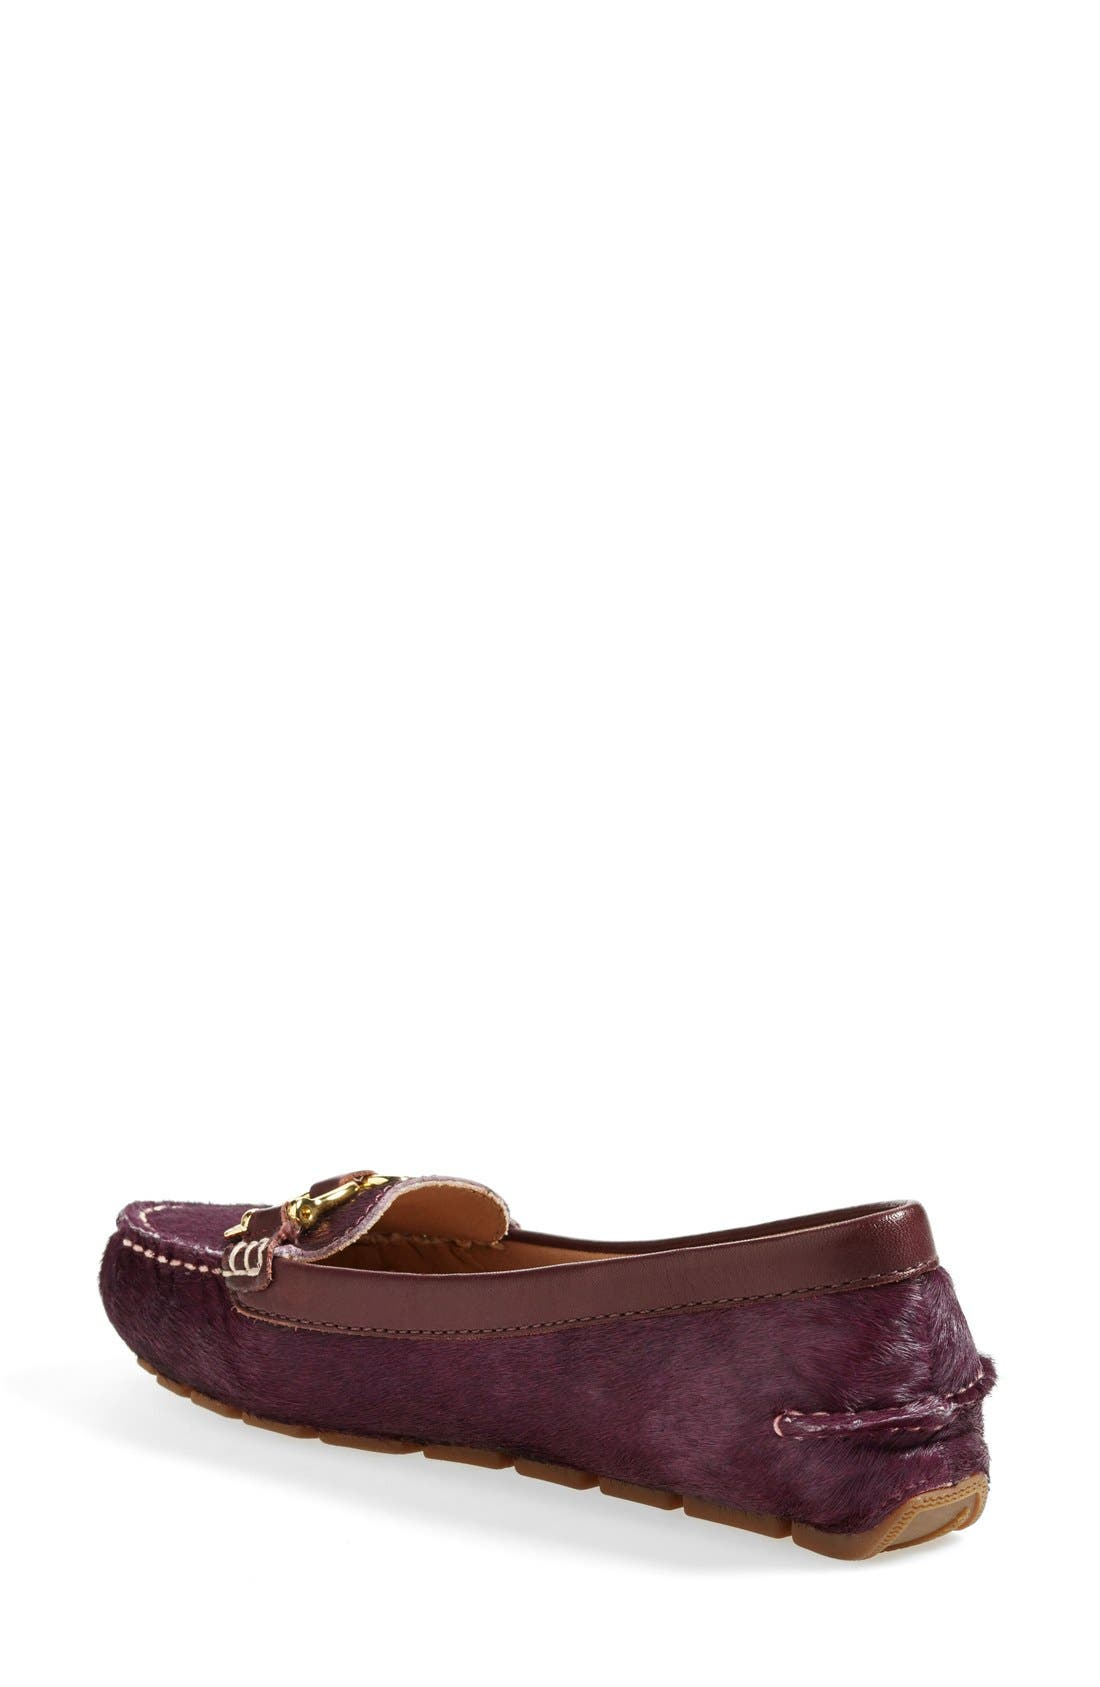 Alternate Image 2  - Sperry Top-Sider® 'Jenna' Metallic Leather Loafer (Online Only) (Women)